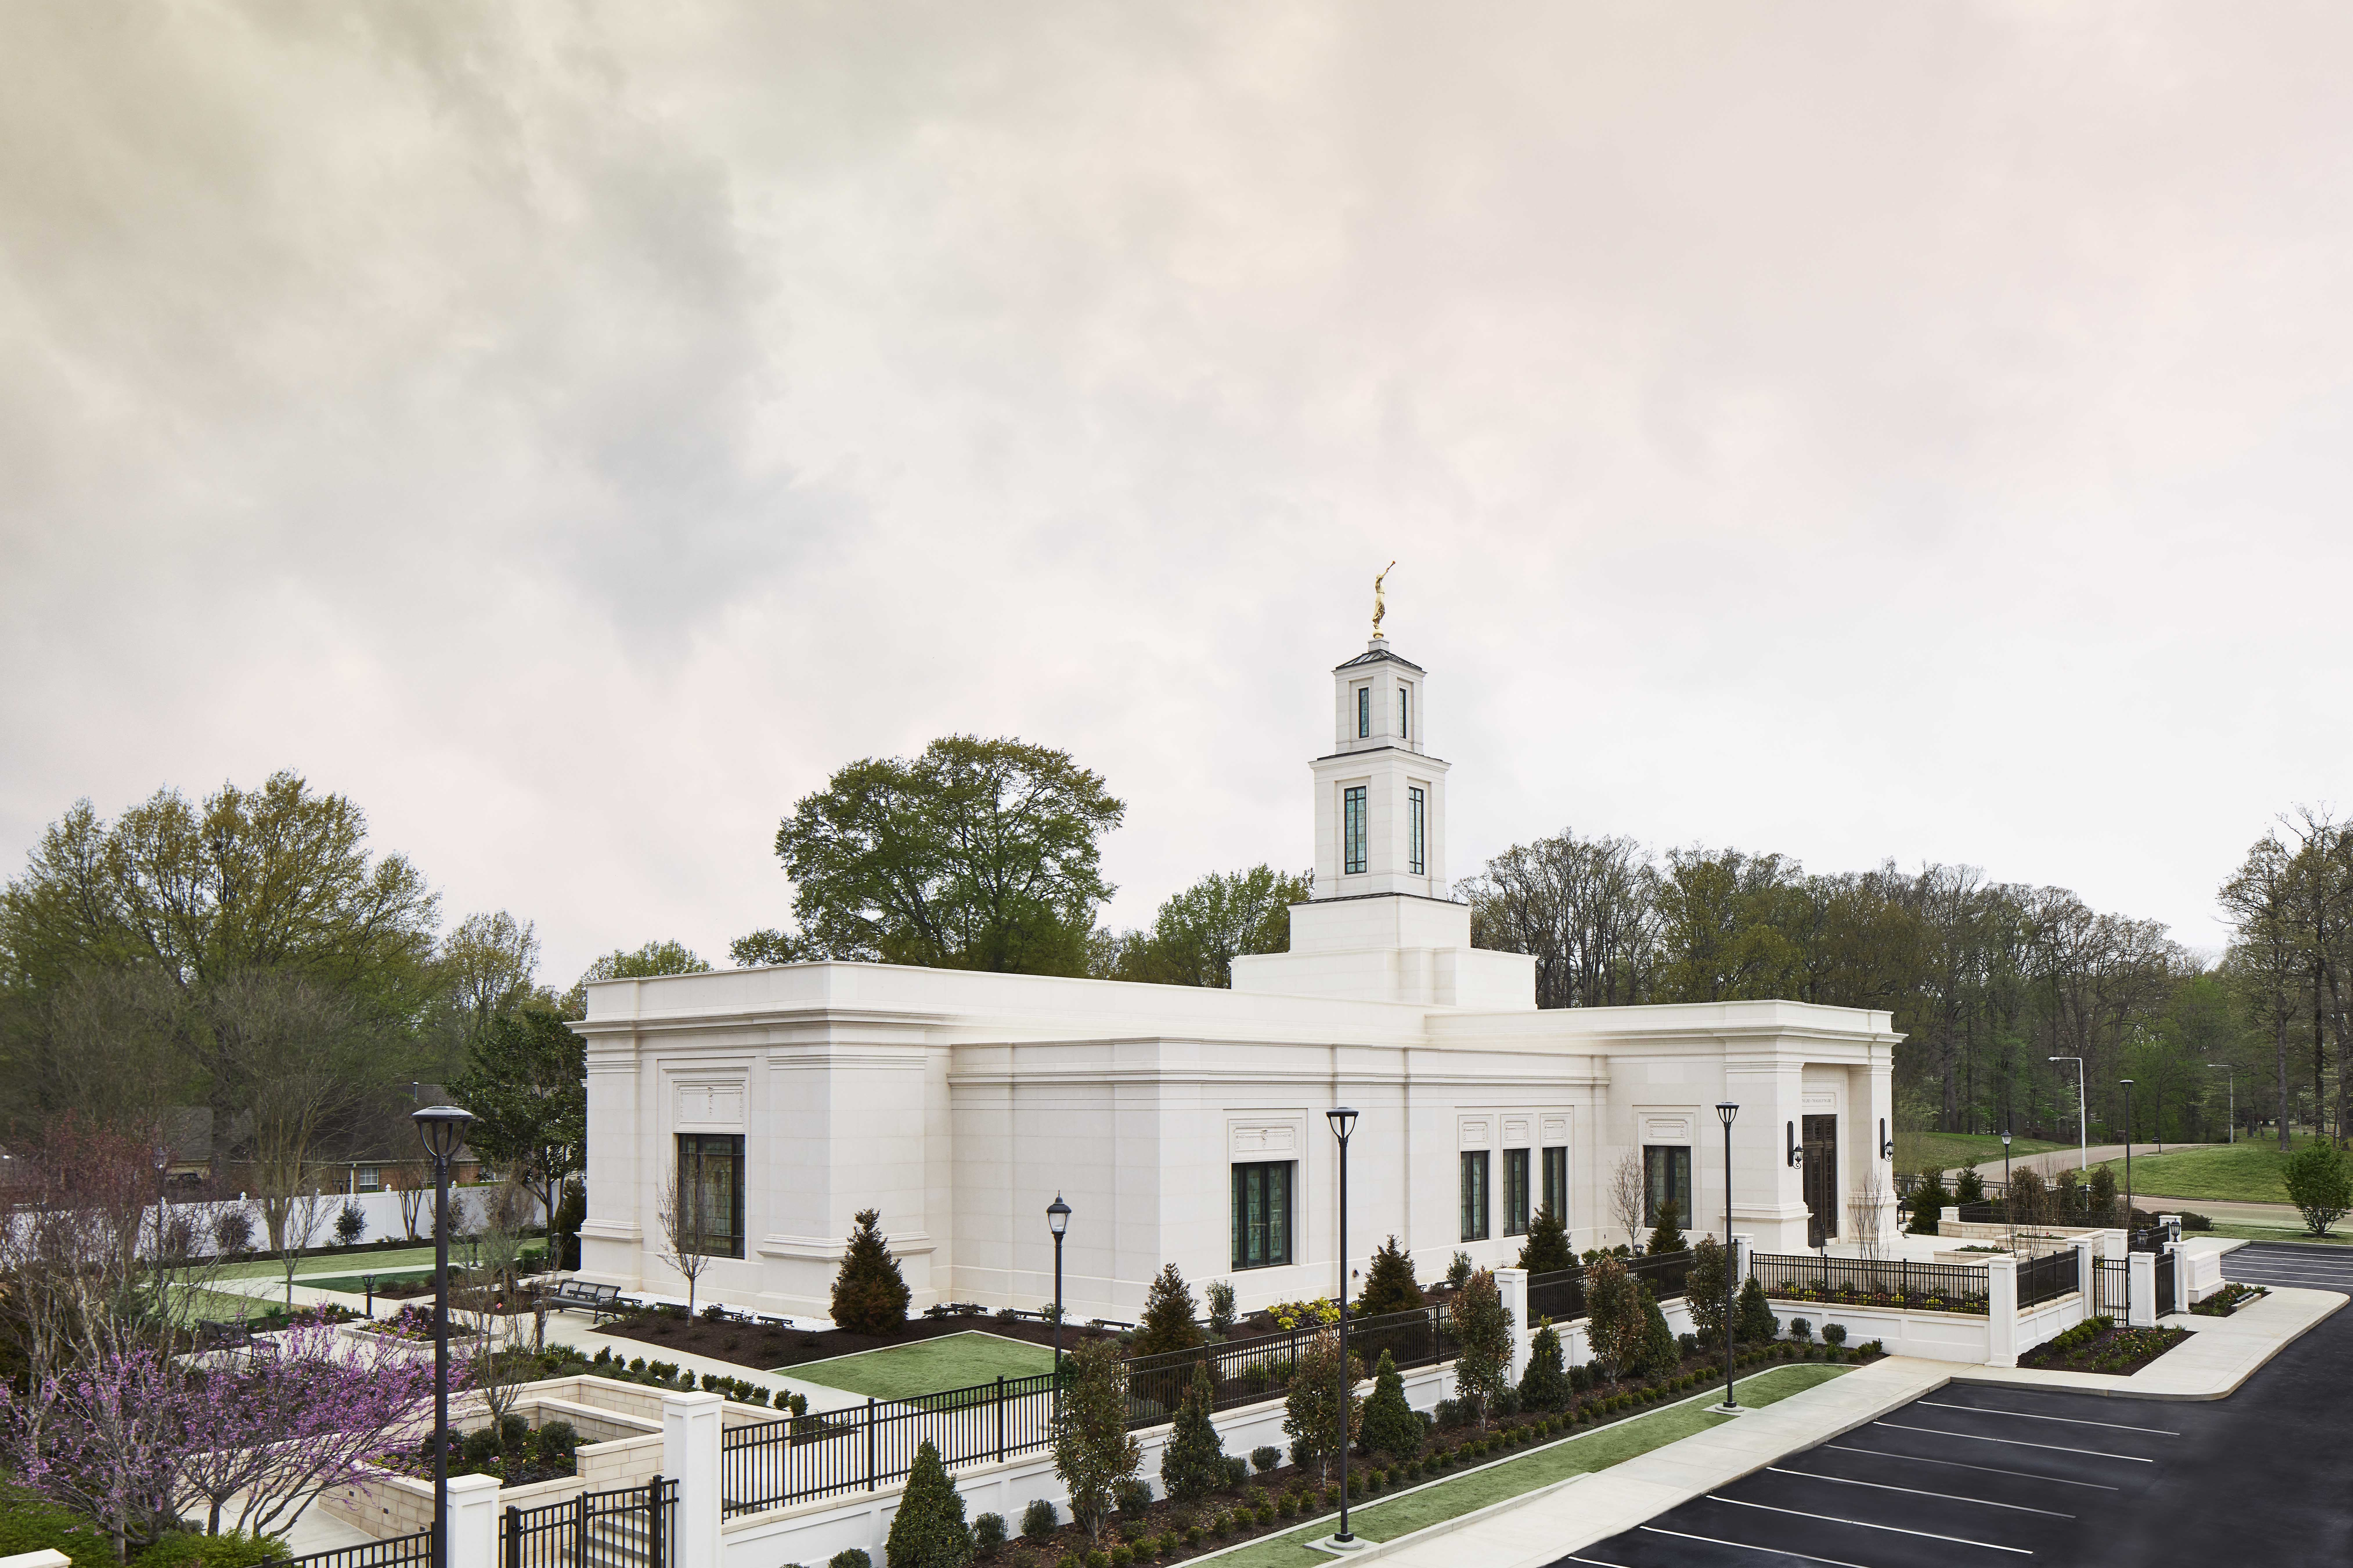 The Memphis Tennessee Temple.